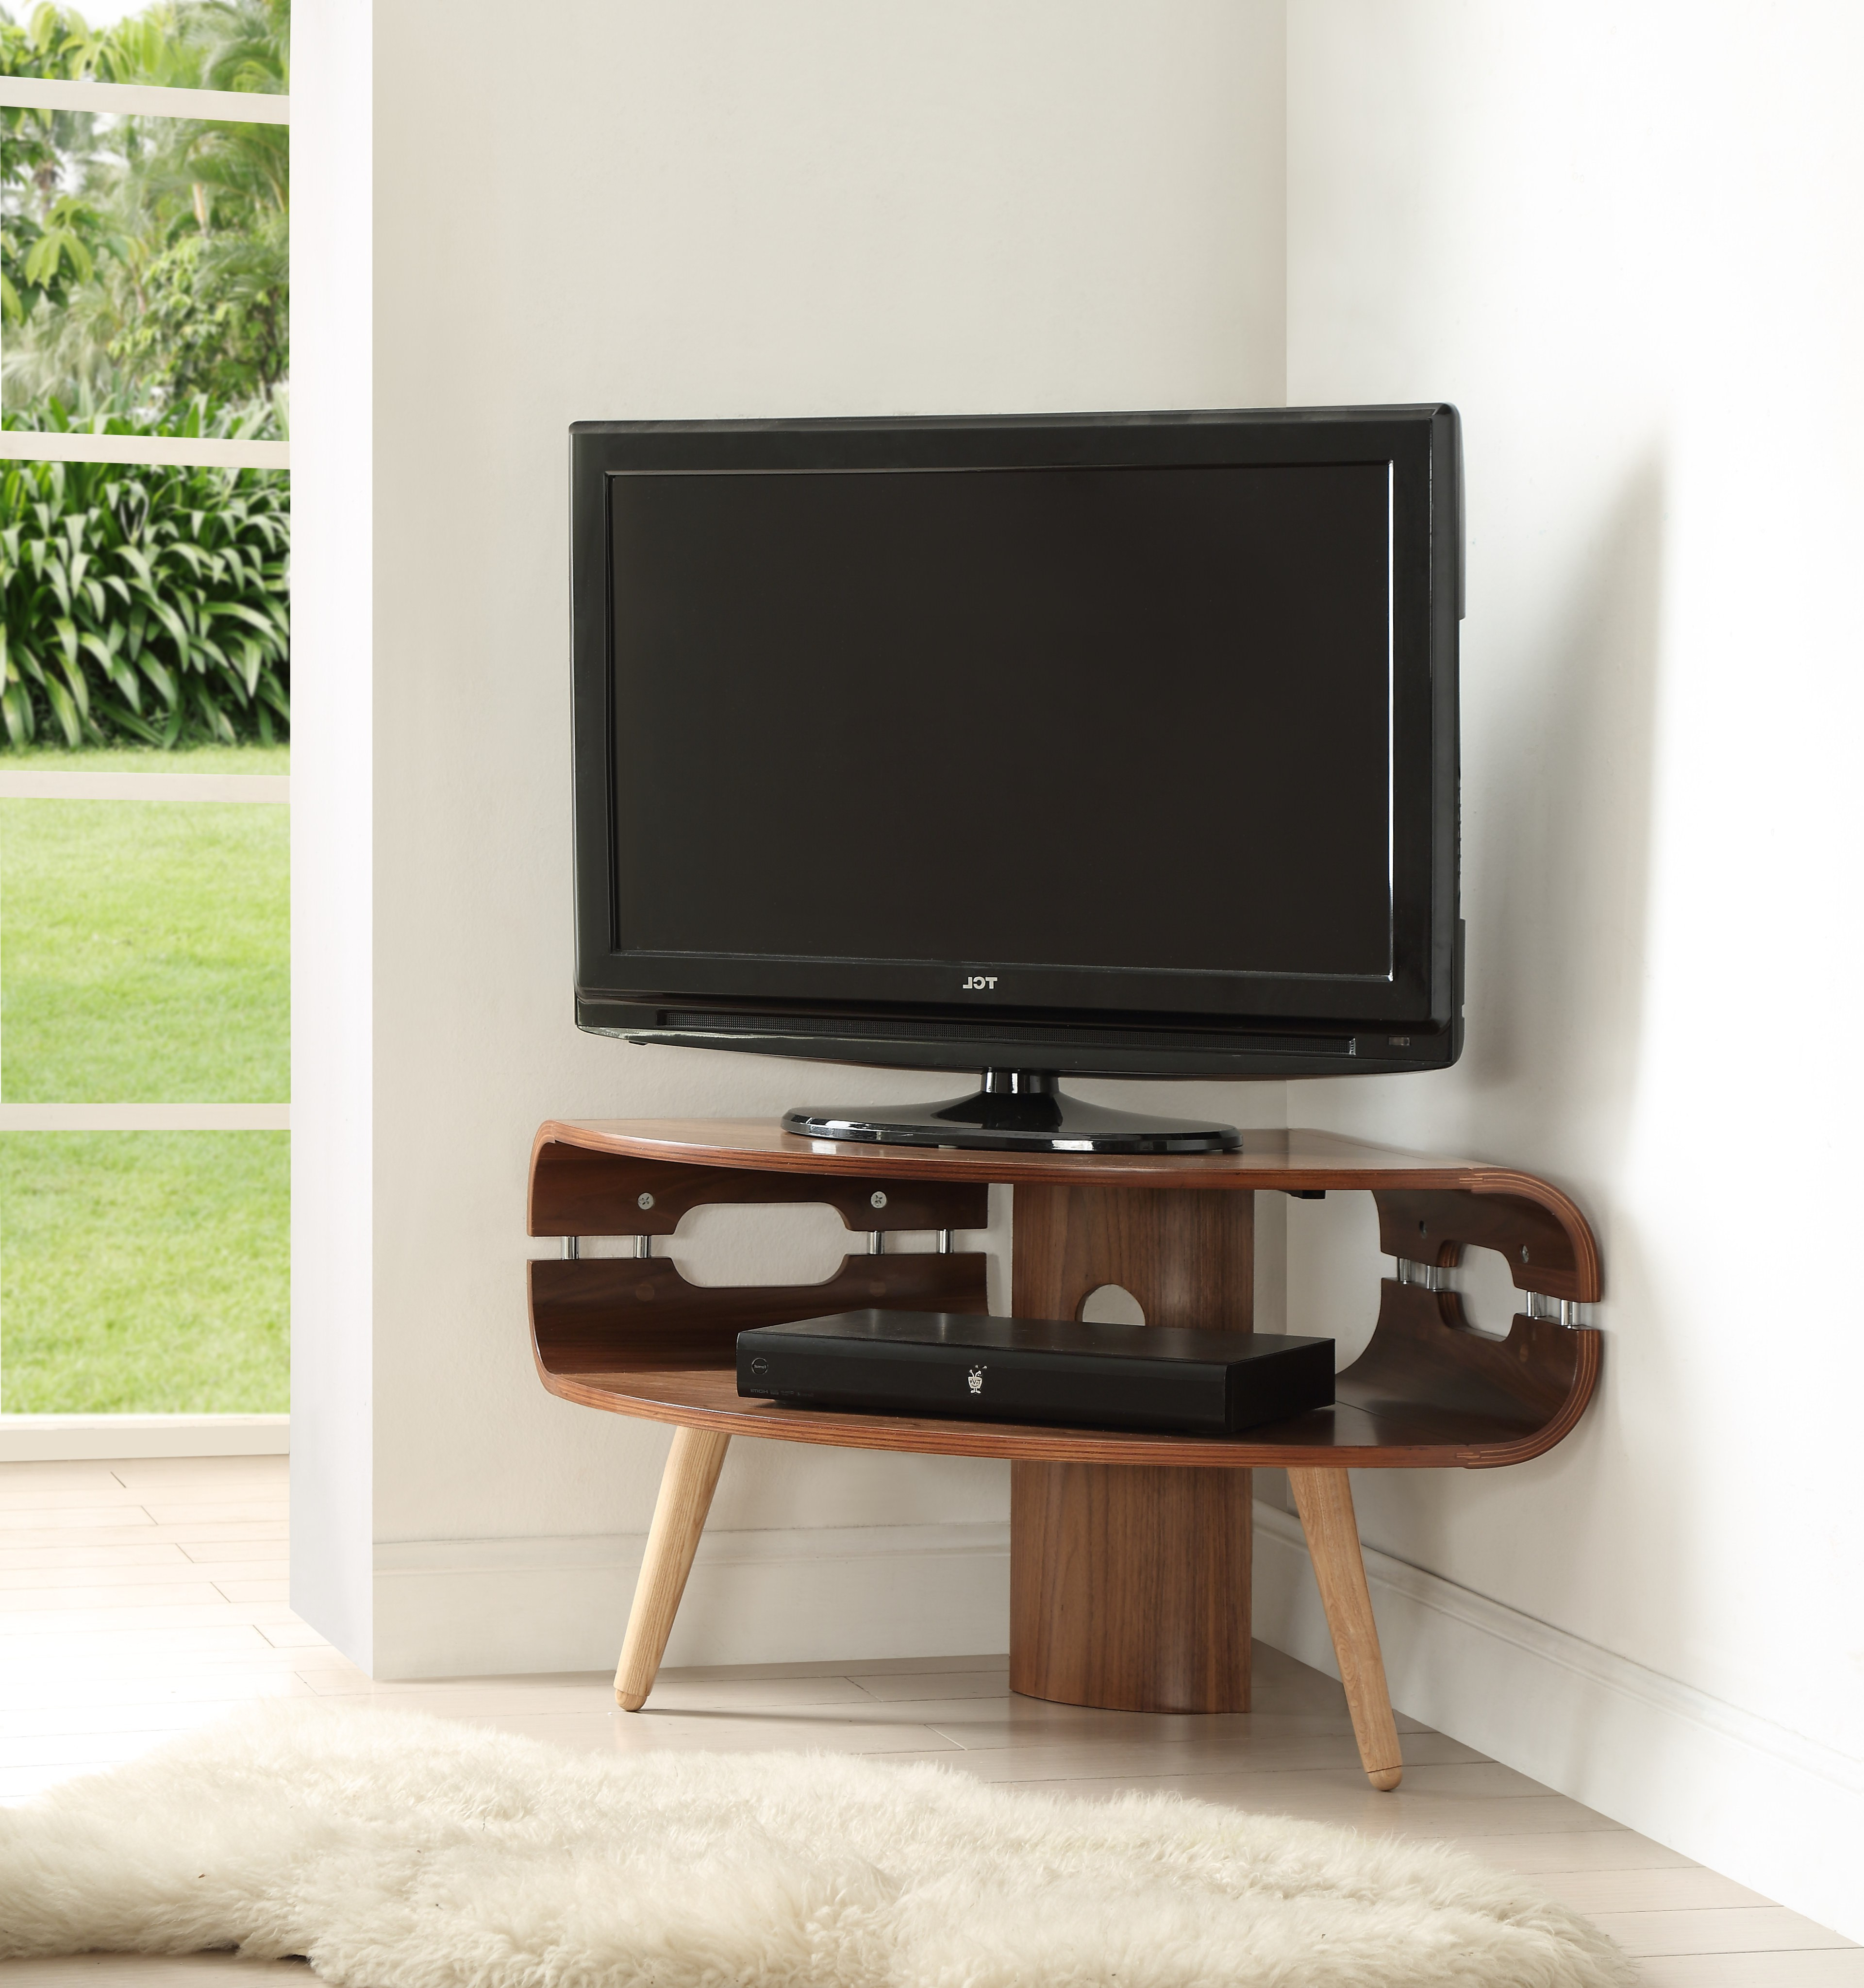 Jf701 Corner Tv Stand – Cooks Within Favorite Small Tv Stands (View 7 of 20)